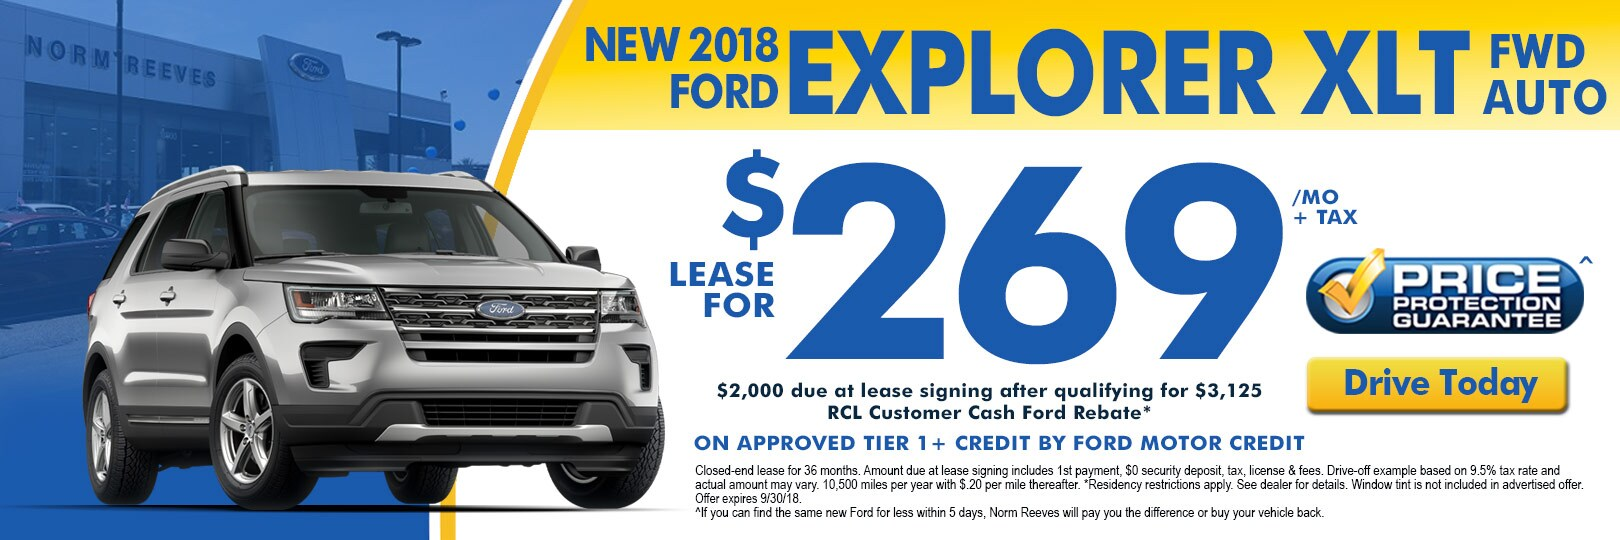 Ford dealer cerritos ca norm reeves ford previous next fandeluxe Choice Image